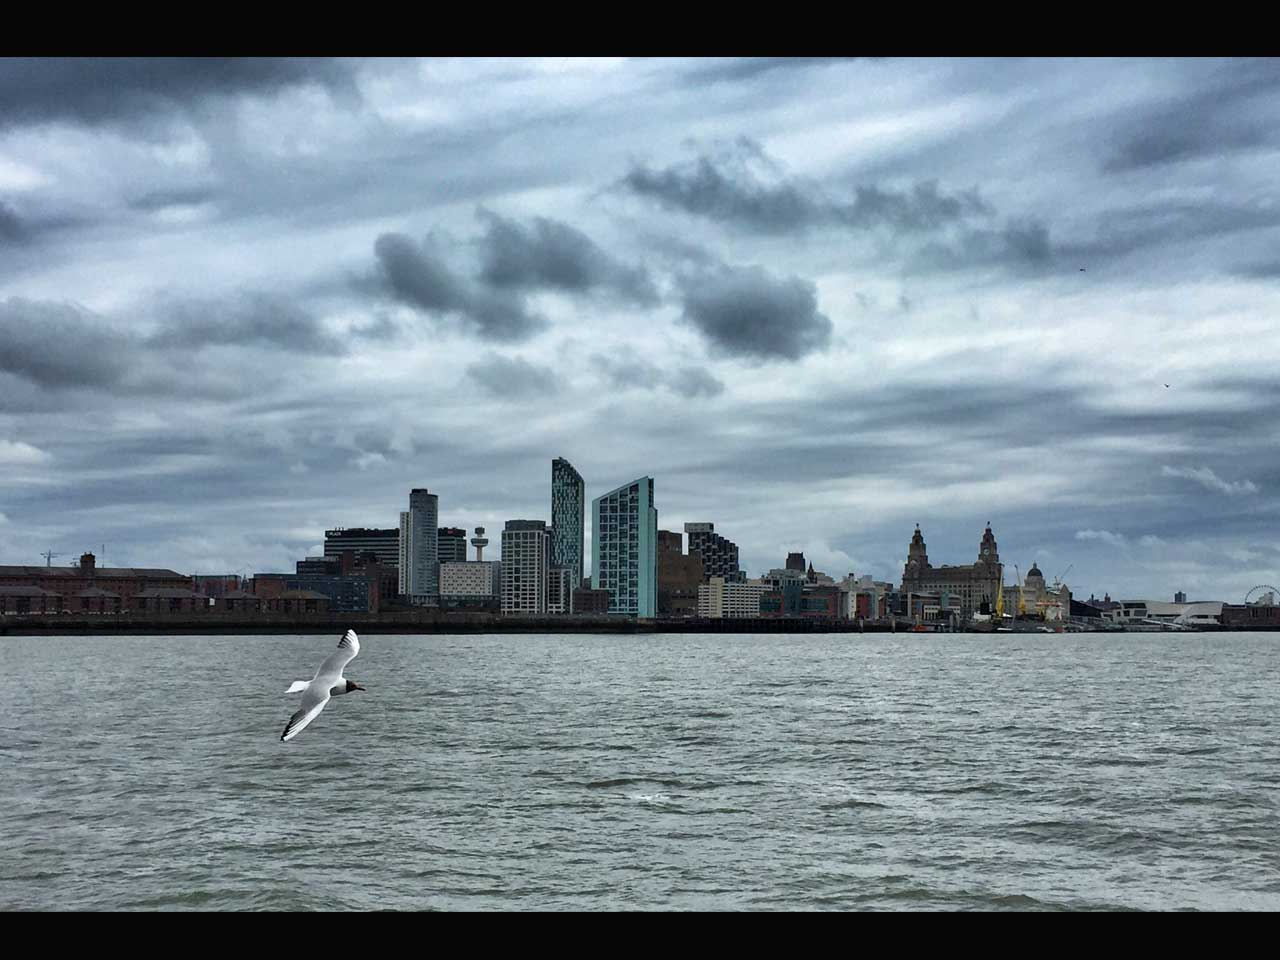 iPhone photo of a seagull flying over the River Mersey in Liverpool